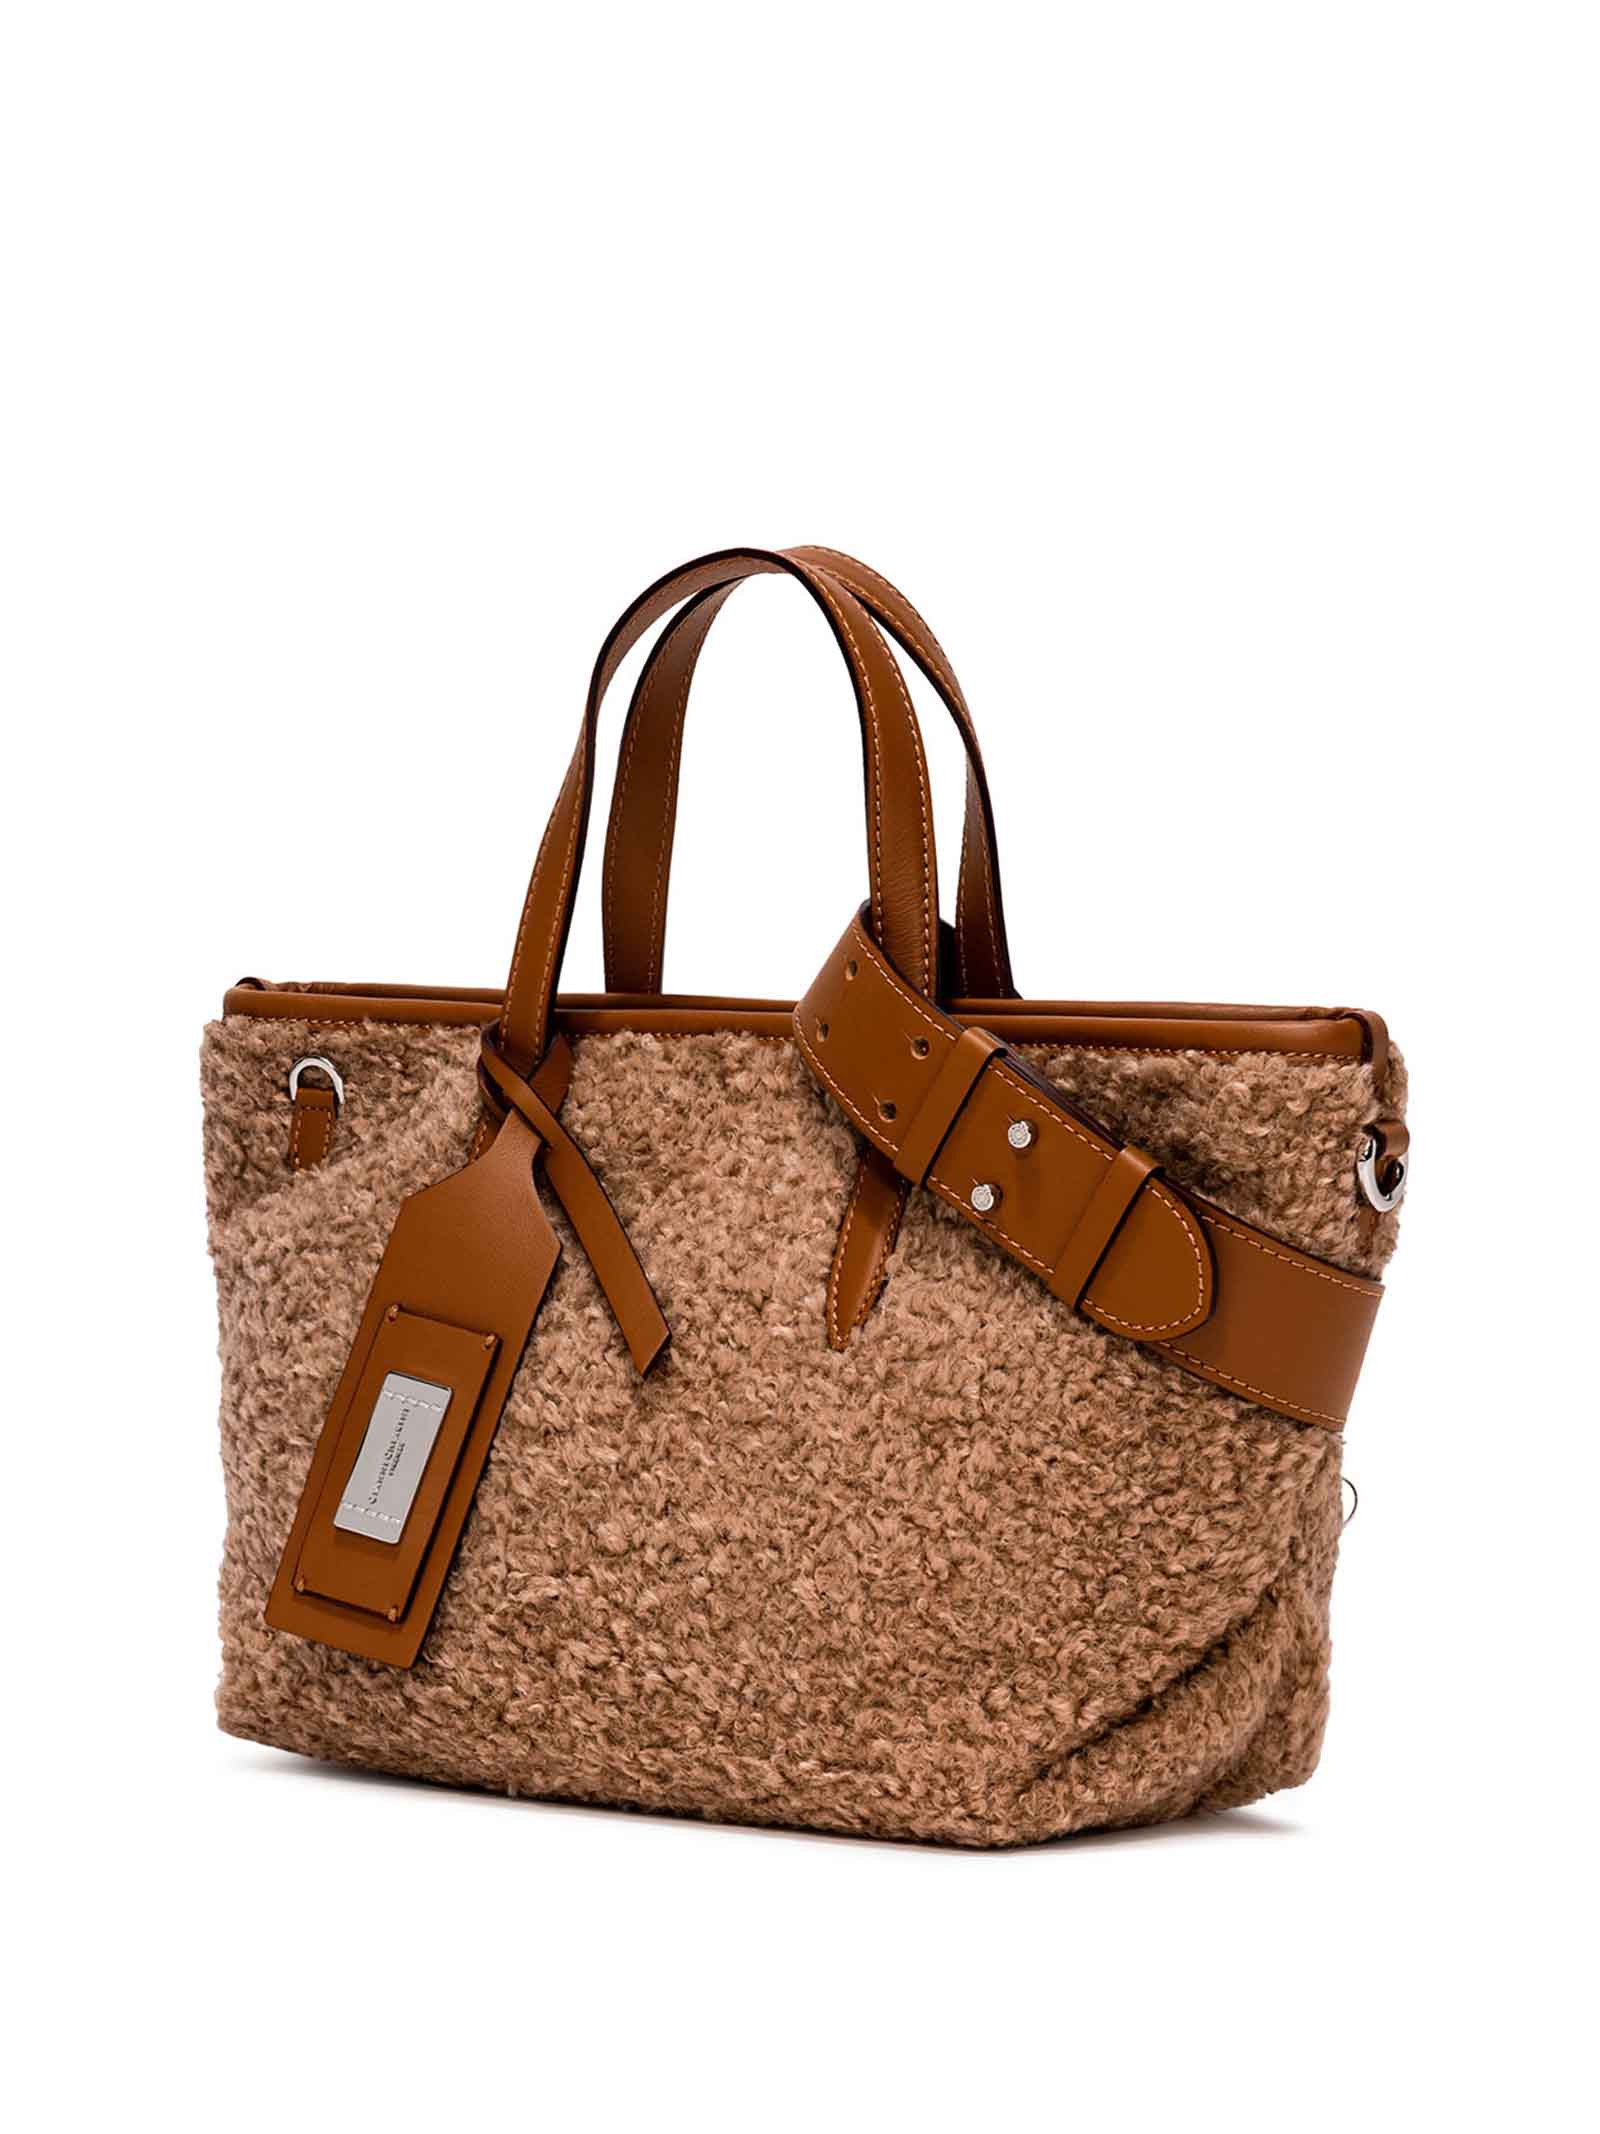 Women's Shoulder Bag Atena in Leather and Tan Wool with Adjustable and Detachable Leather Cross-body Strap Gianni Chiarini   Bags and backpacks   BS860011567